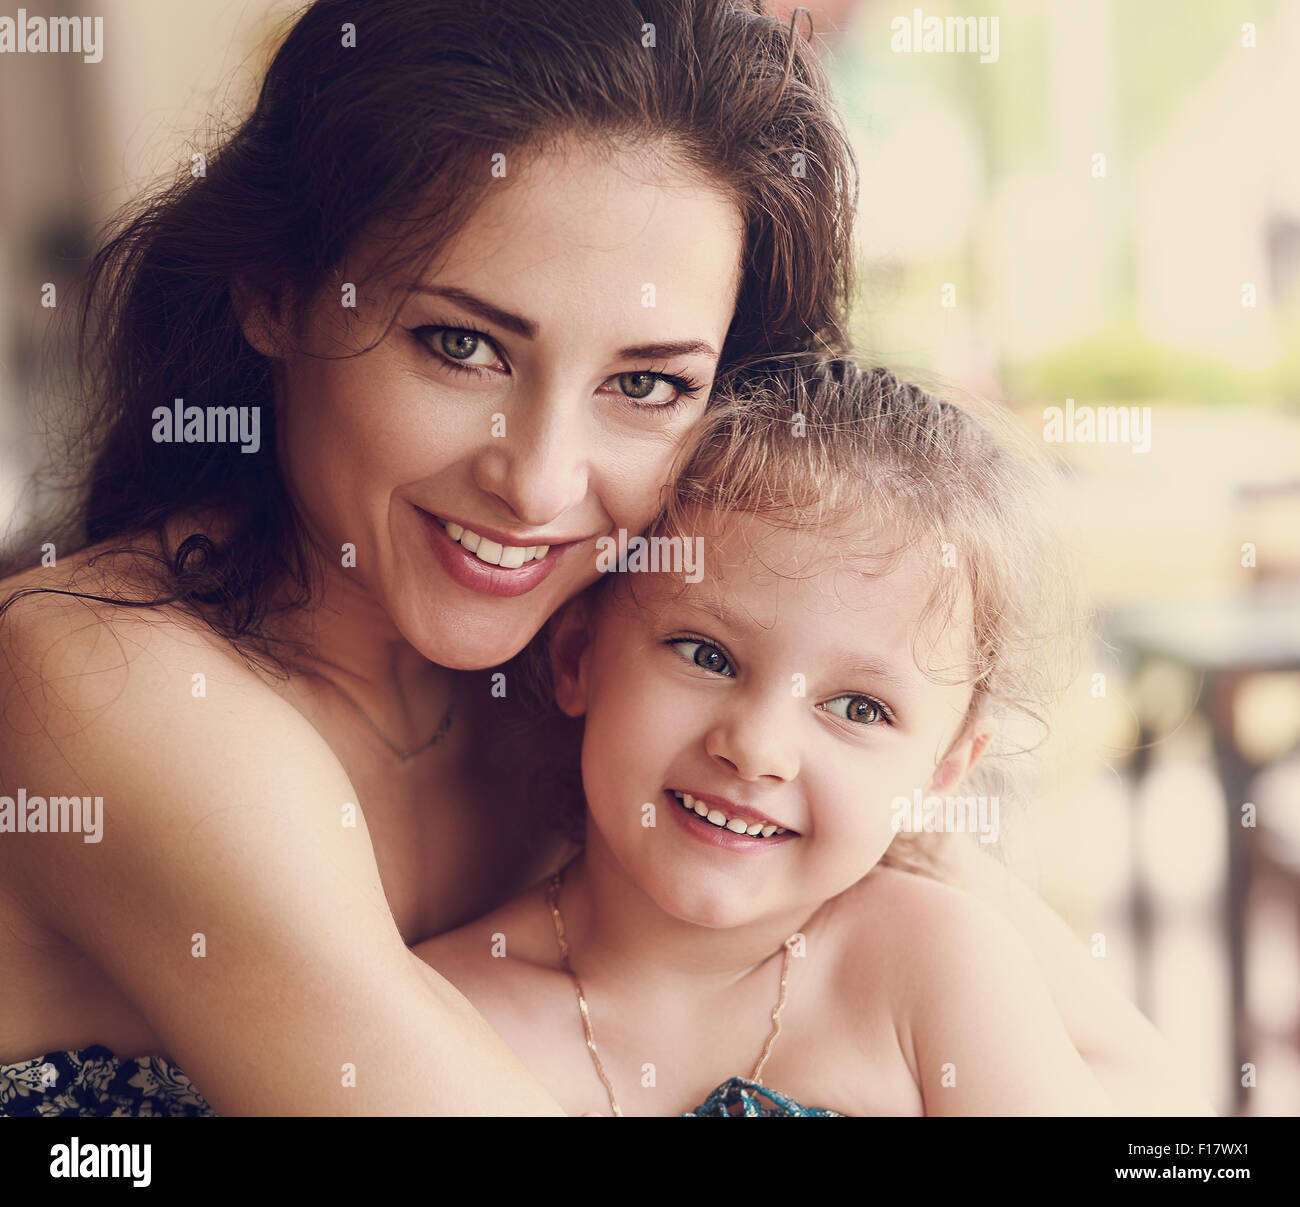 Happy beautiful mother cuddling her small daughter with smile in cafe. Closeup vintage portrait - Stock Image